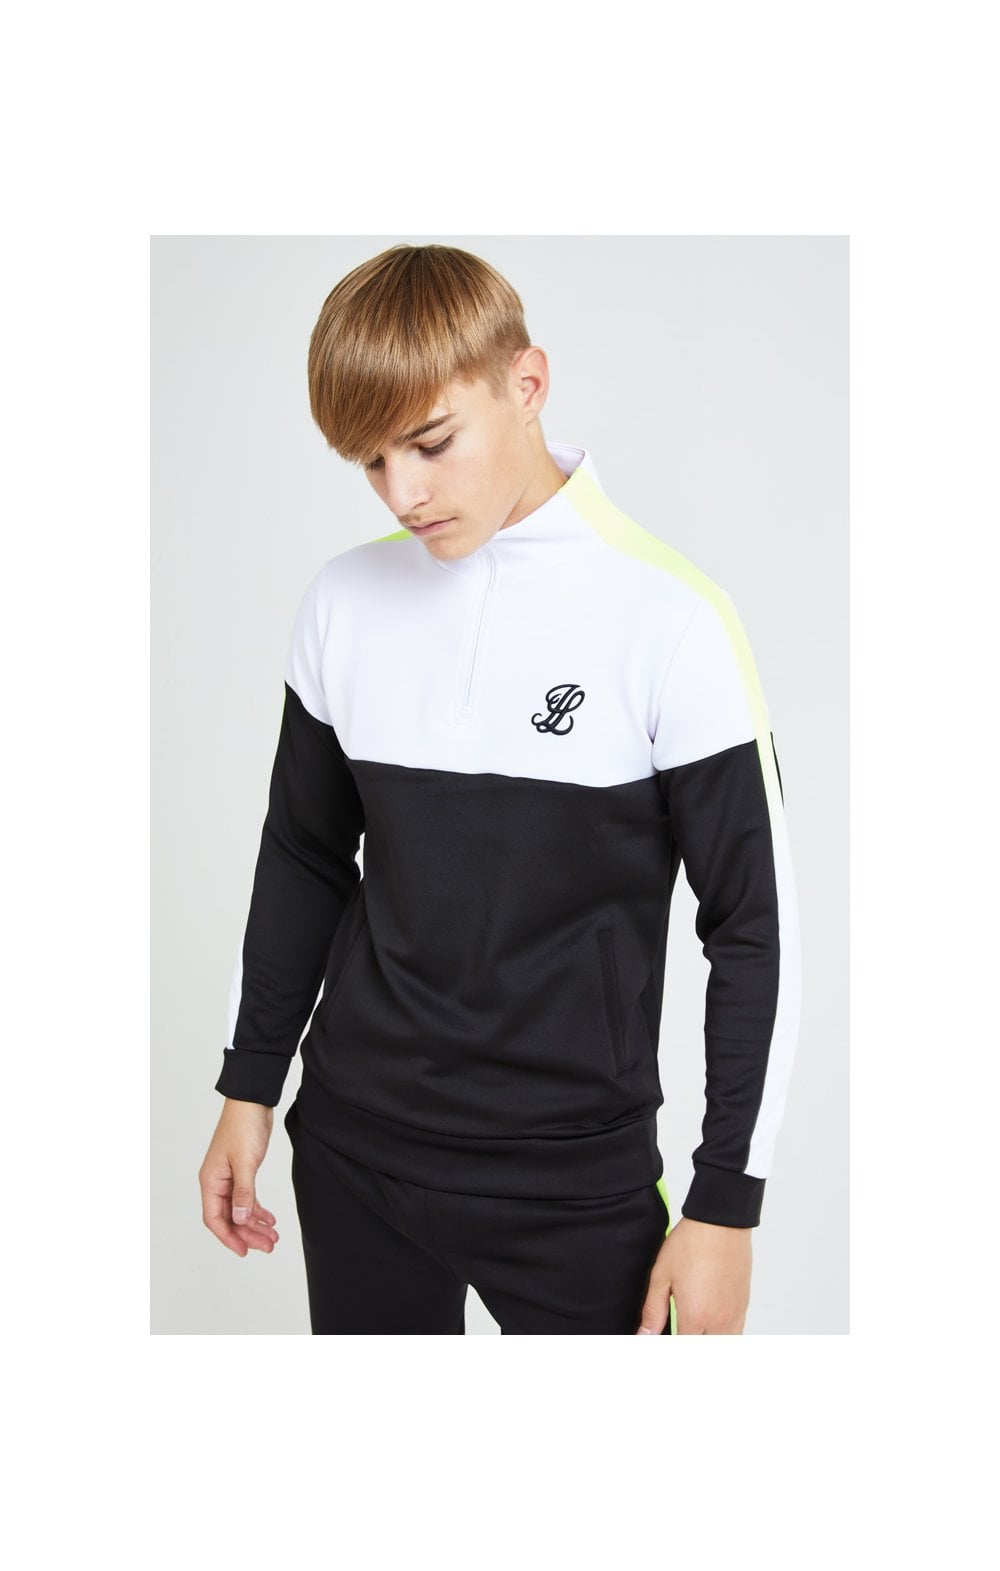 Load image into Gallery viewer, Illusive London Fade Funnel Neck Hoodie - Black,White & Neon Yellow (5)